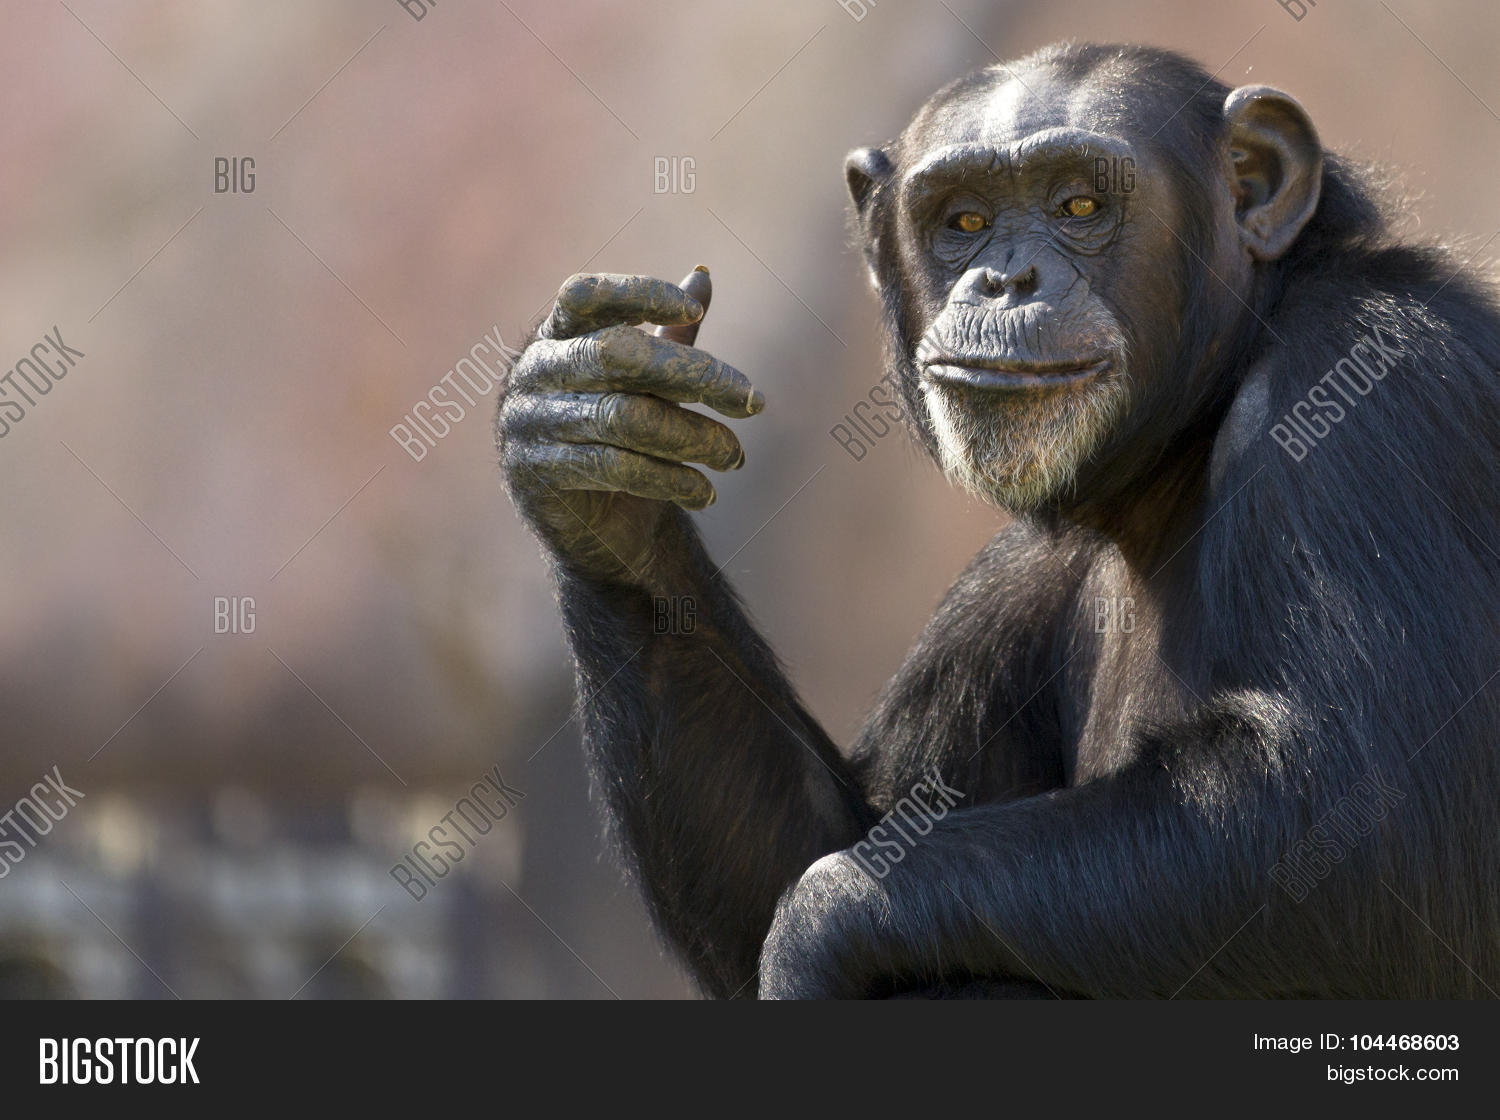 funny chimp image photo free trial bigstock